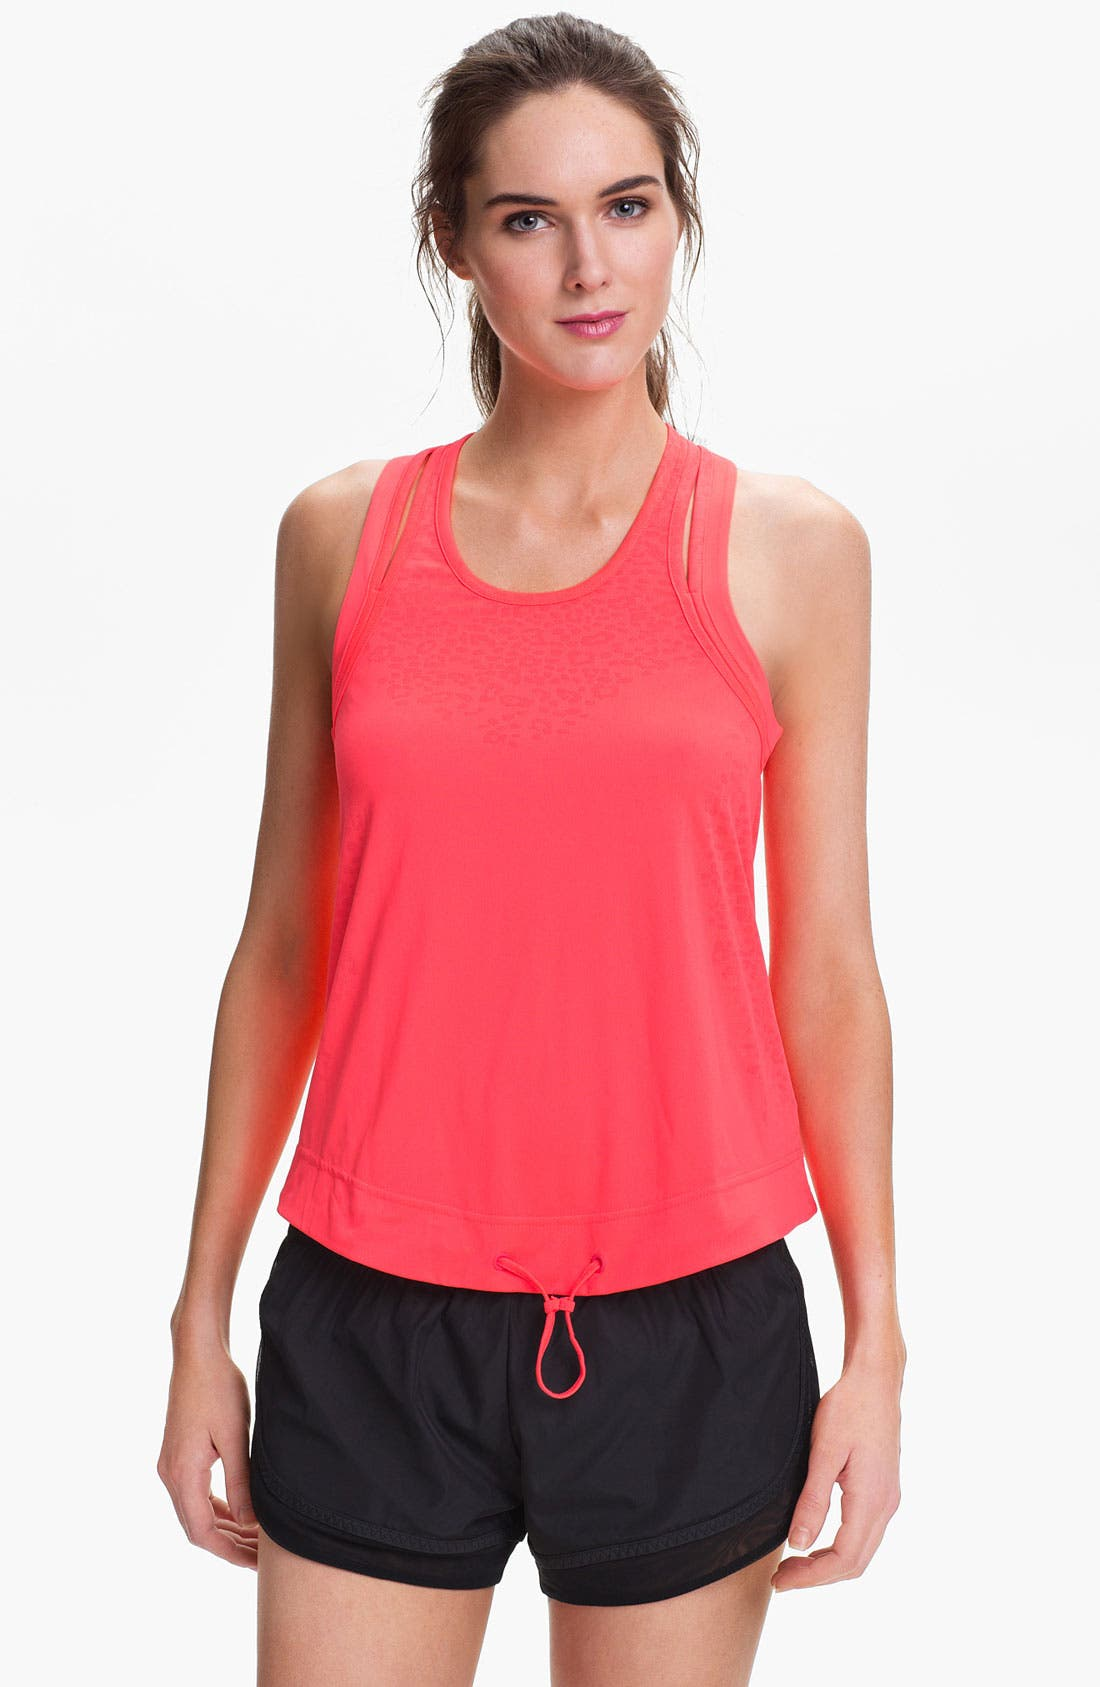 Main Image - adidas by Stella McCartney 'Elite' Performance Tank